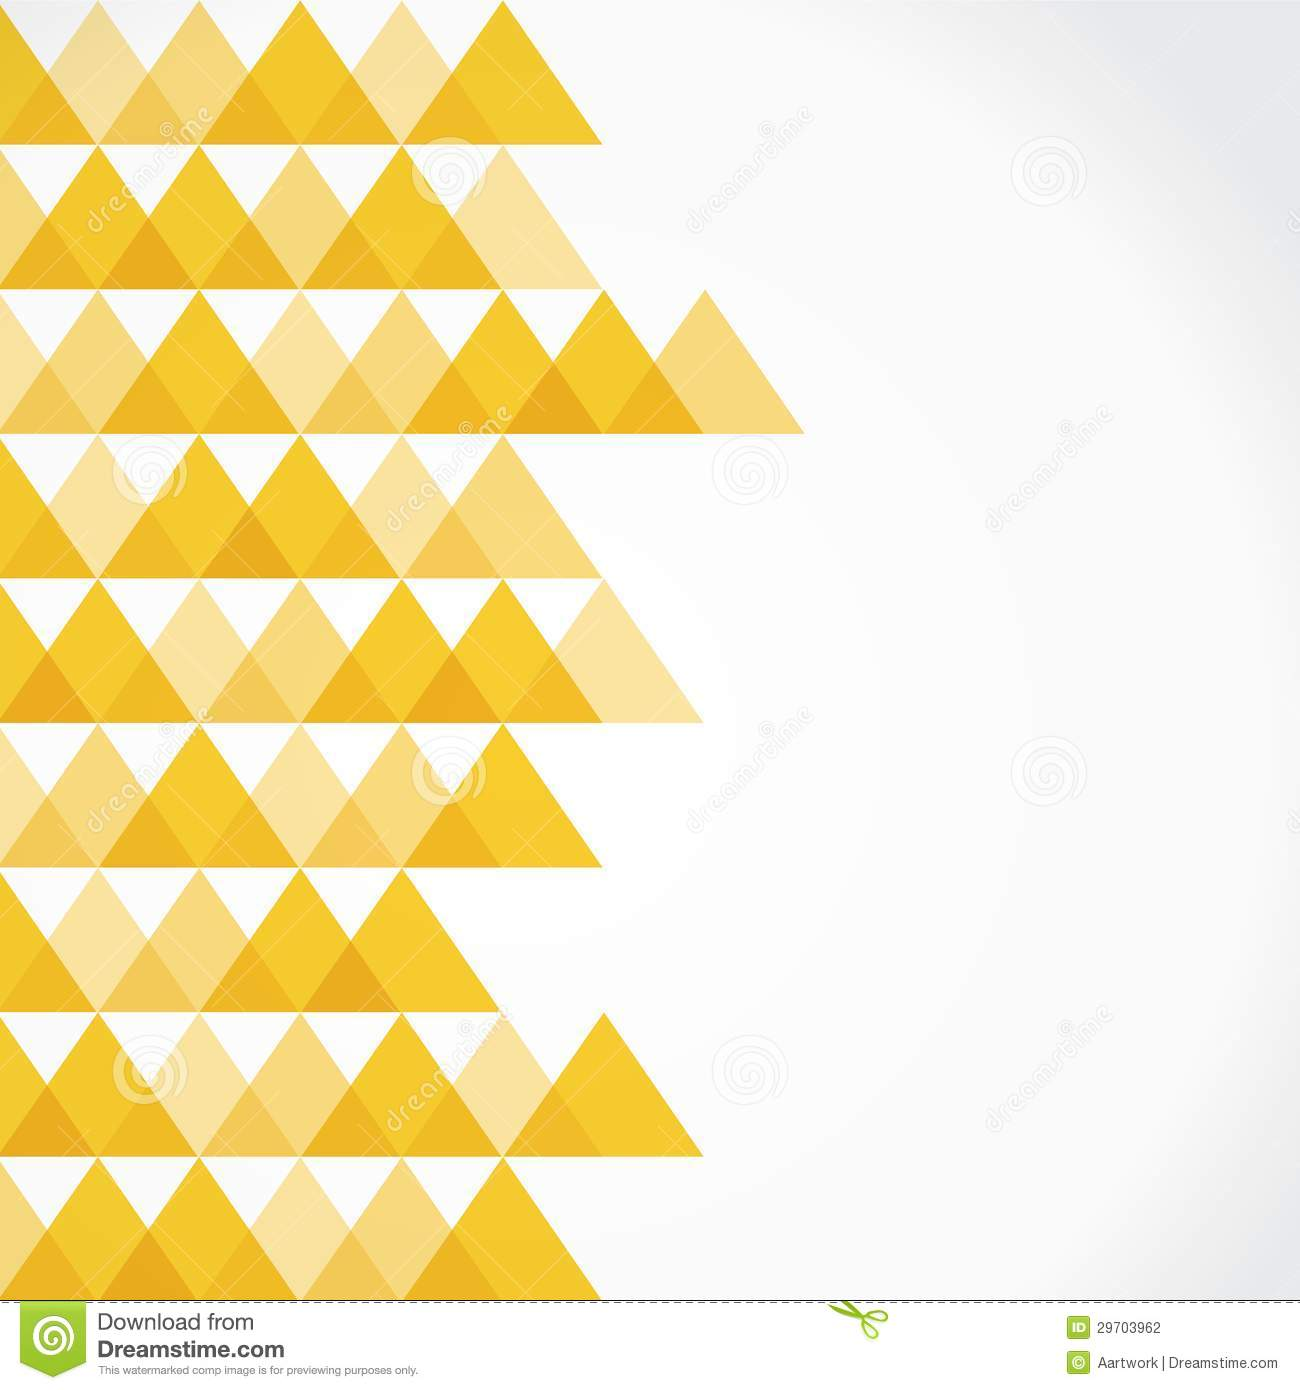 Yellow triangle background stock vector. Image of beige